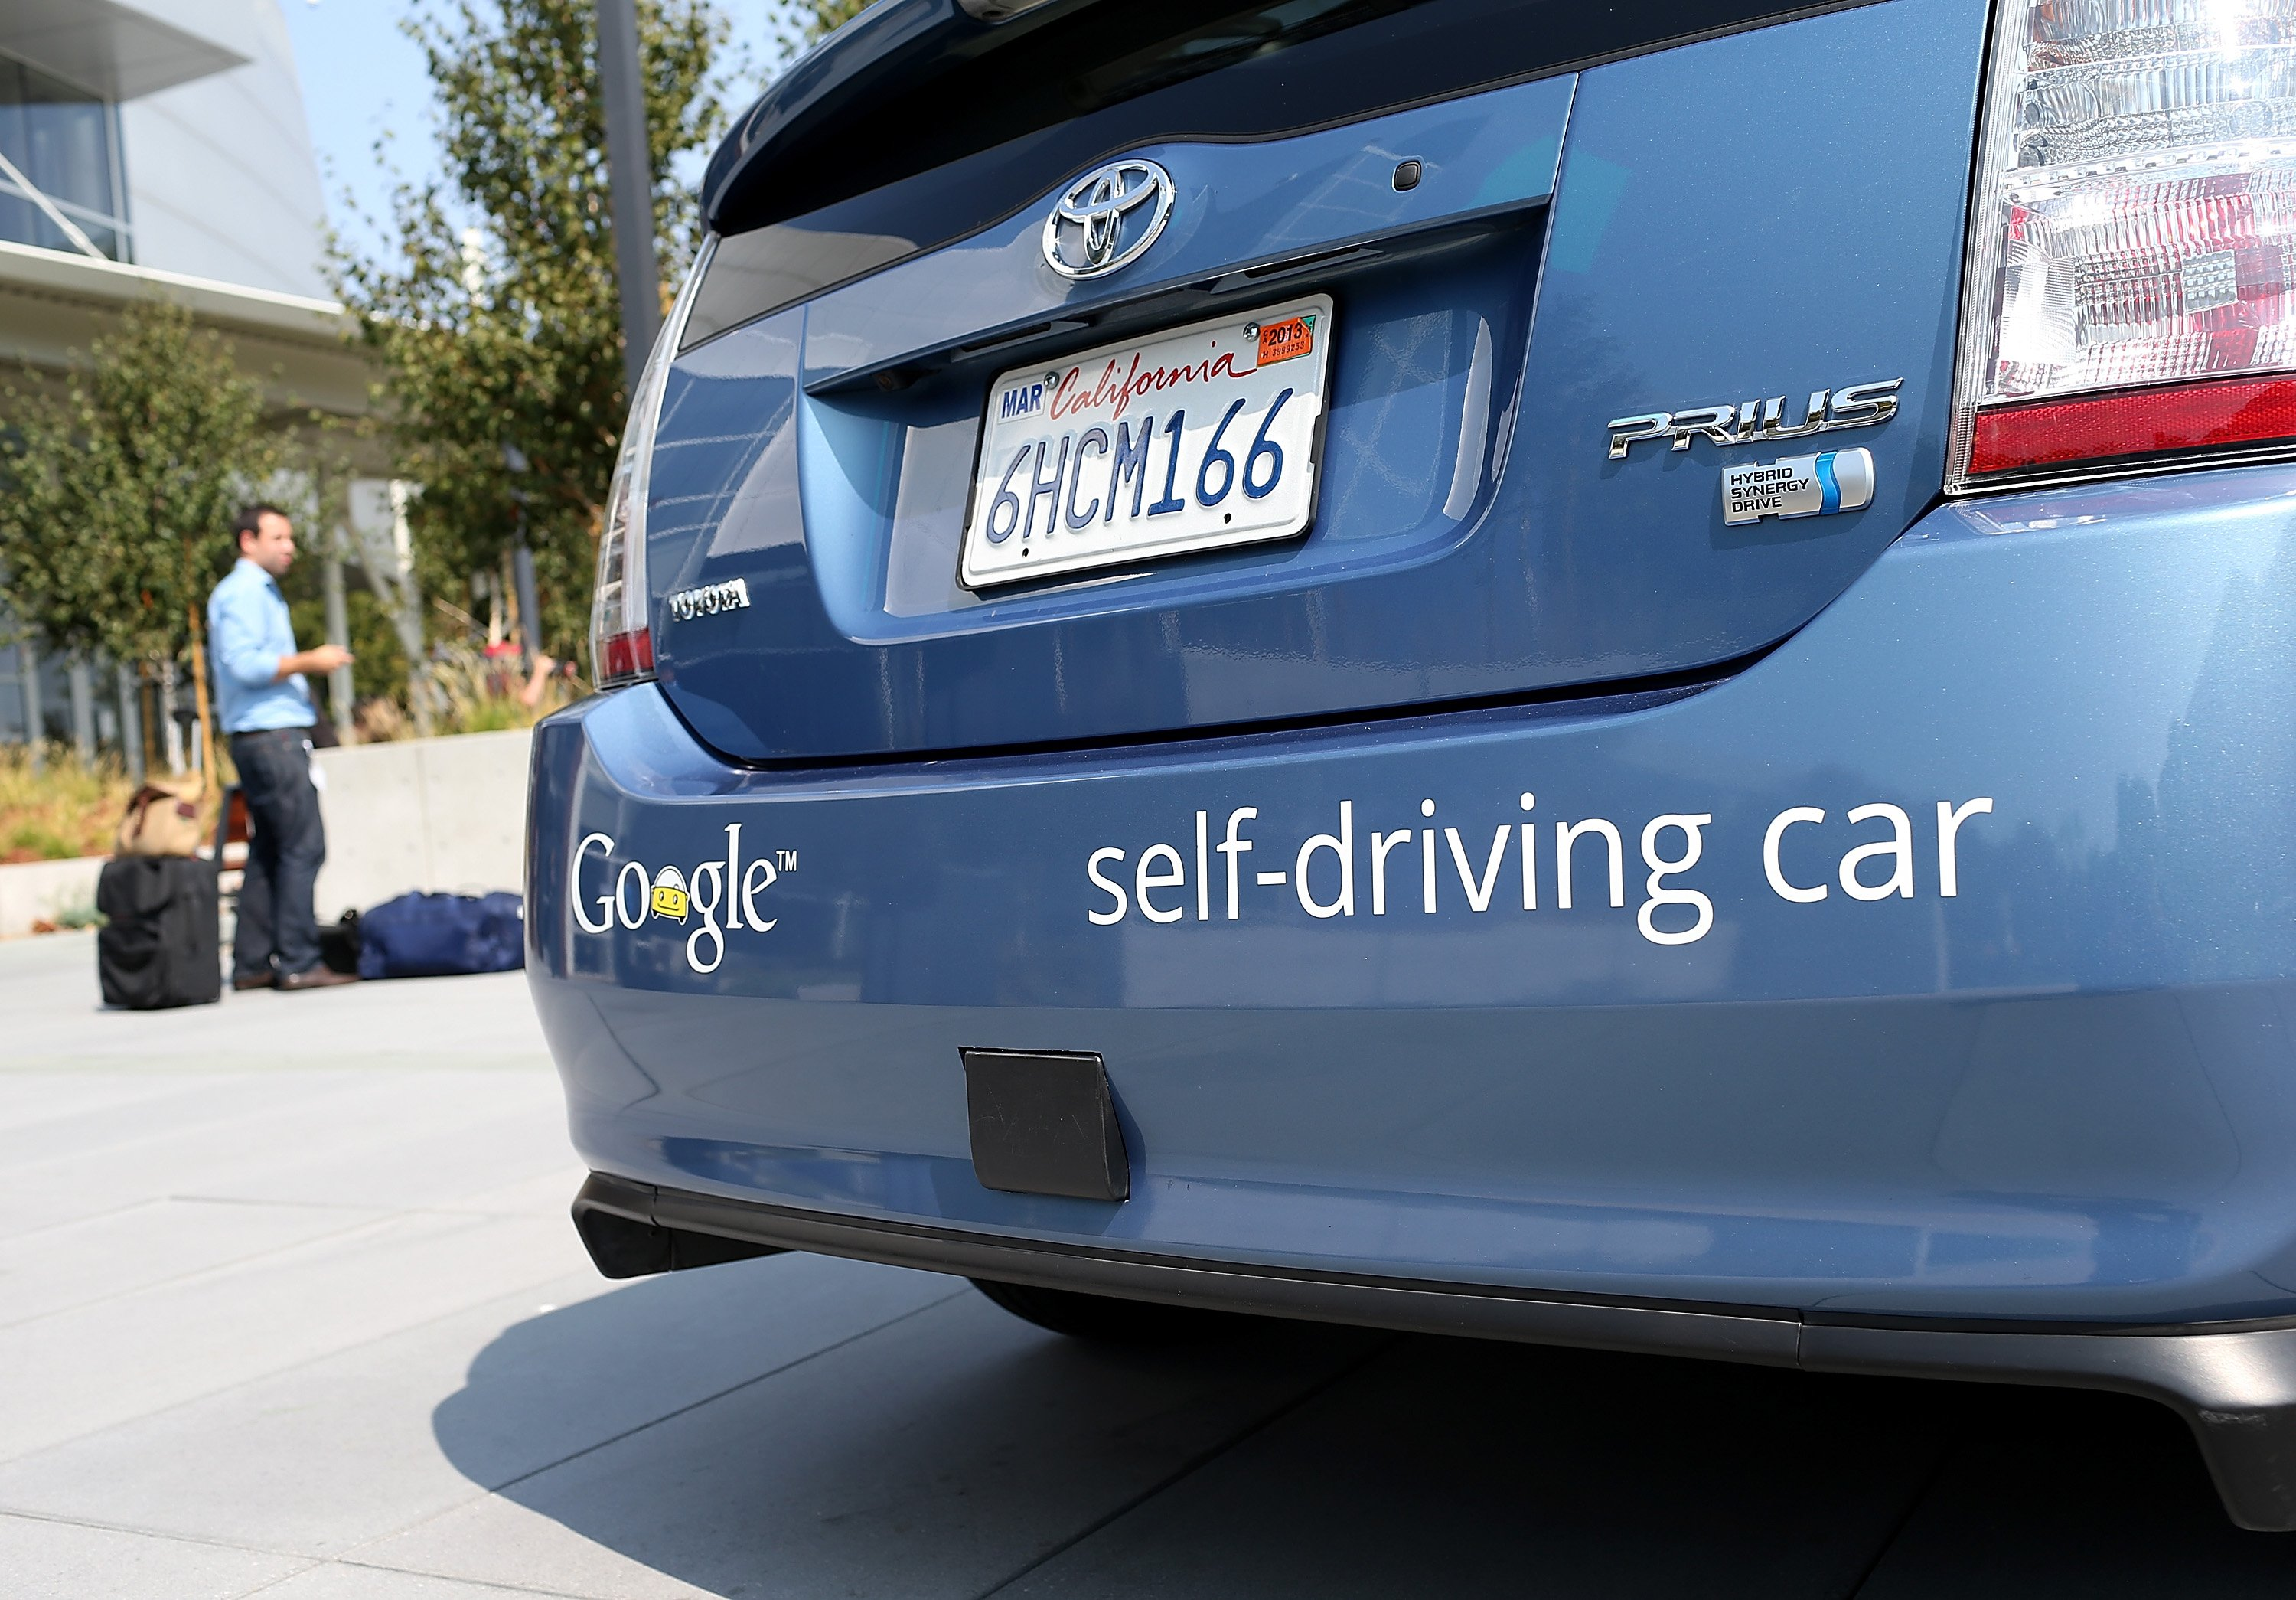 20 million self-driving cars in 10 years | Virgin